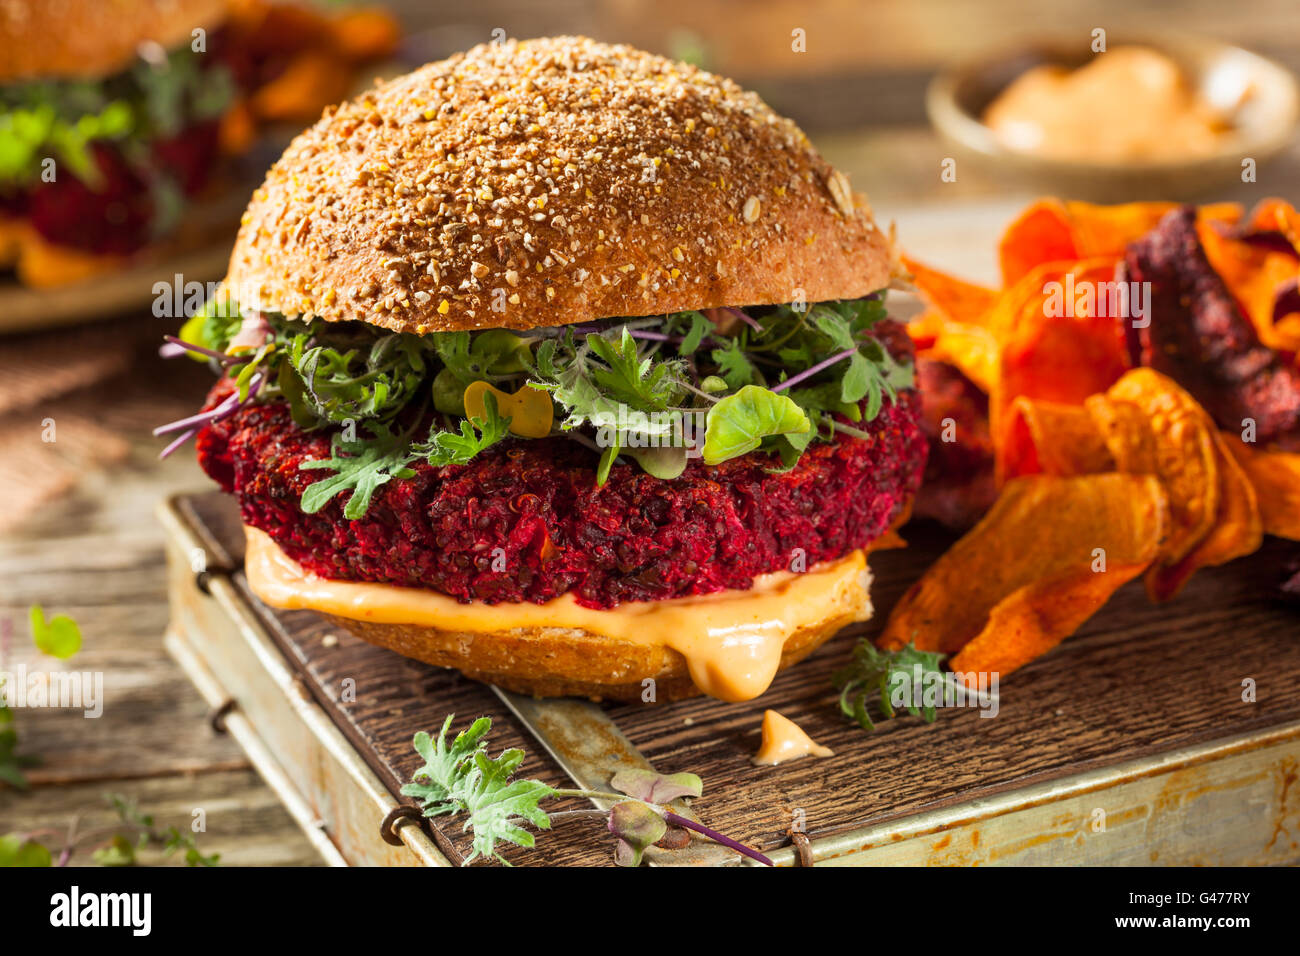 Healthy Baked Red Vegan Beet Burger with Microgreens - Stock Image